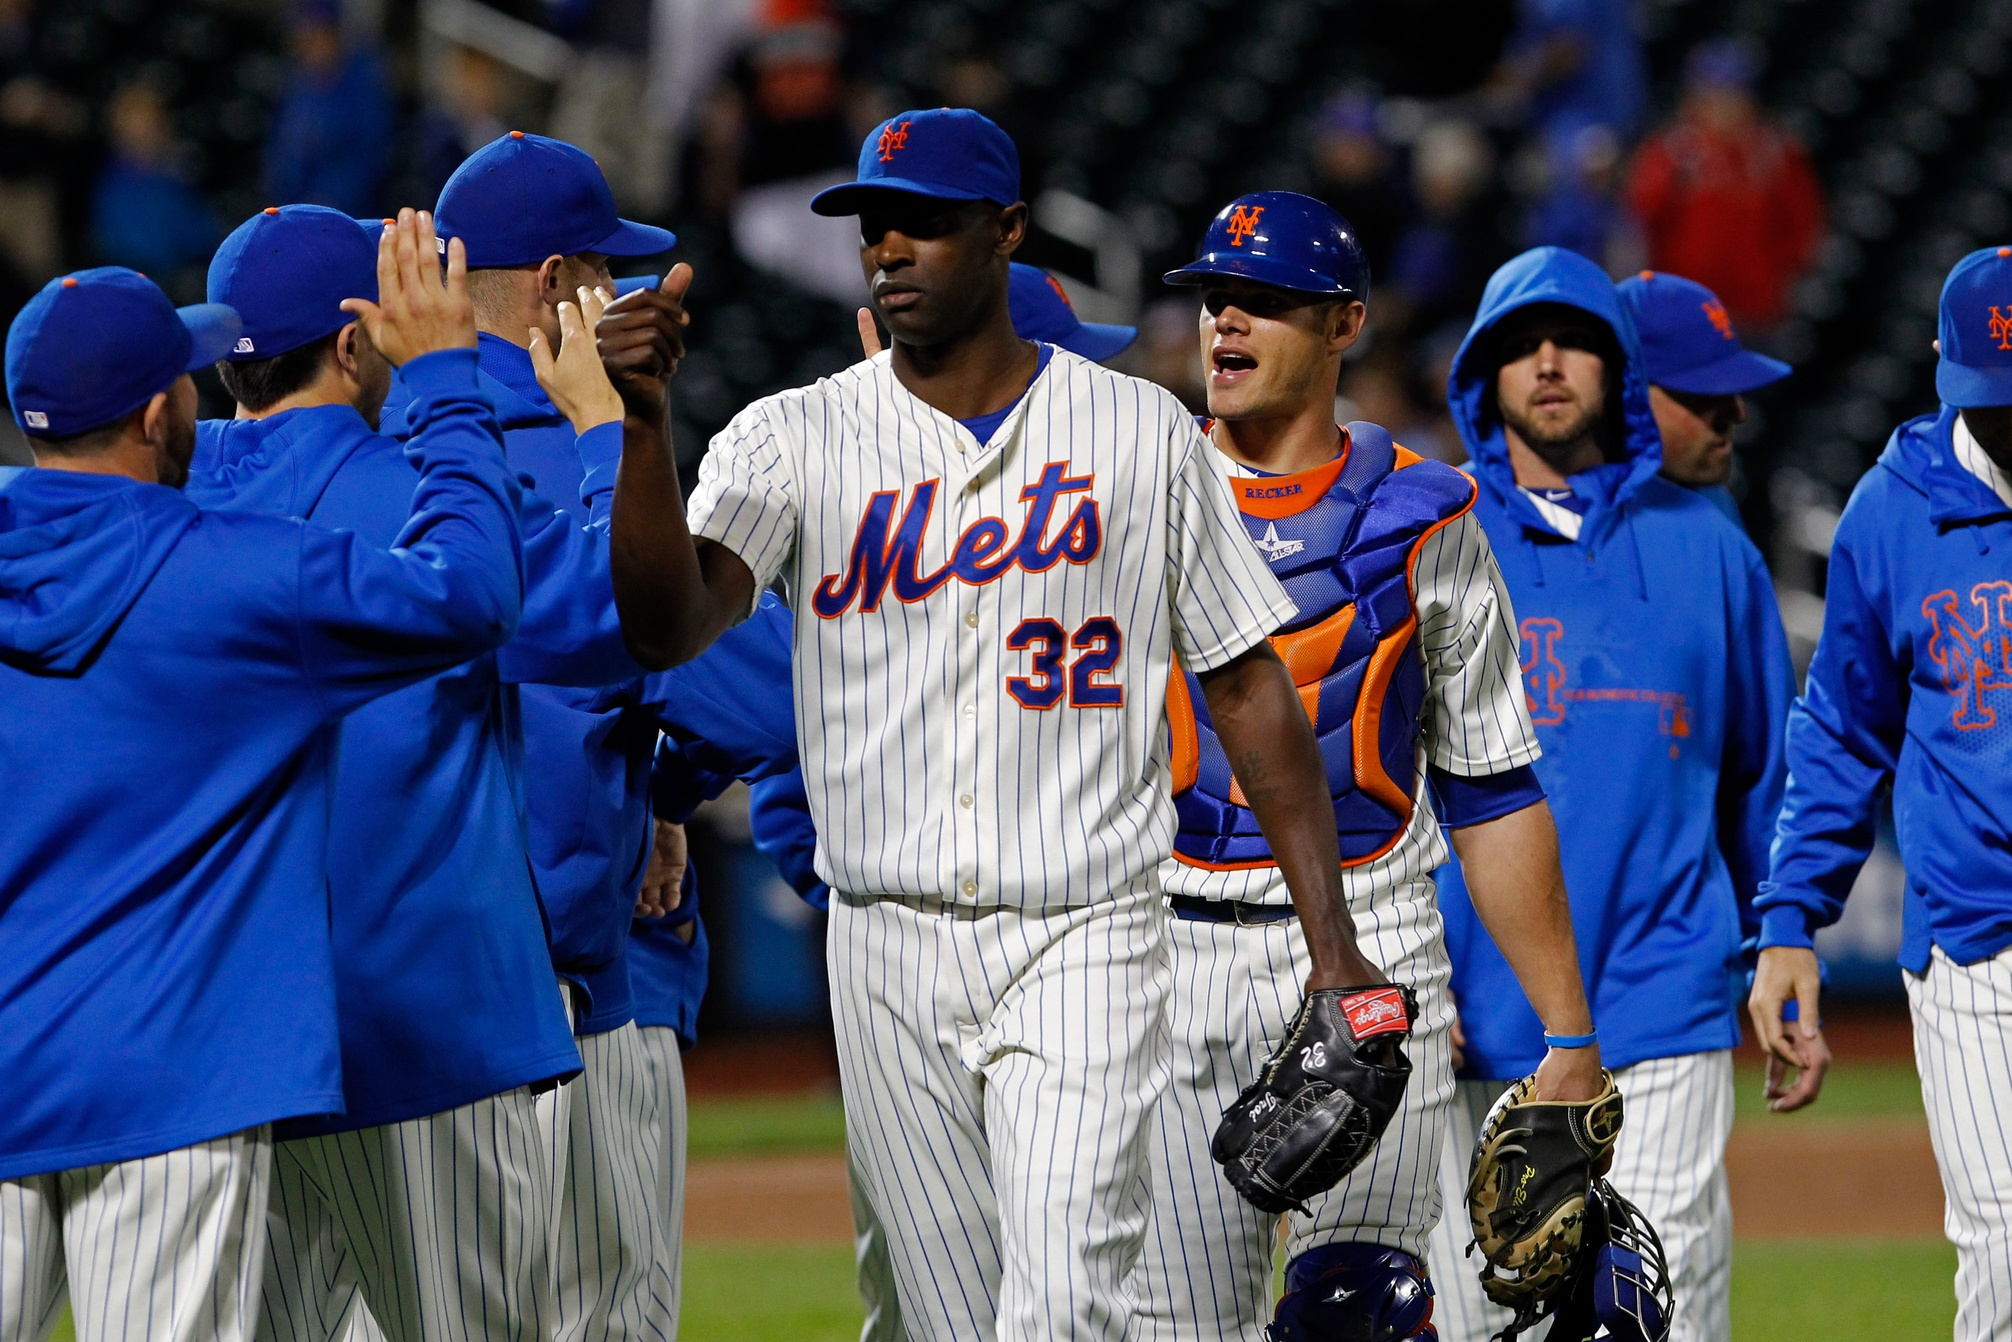 Mets and LaTroy Hawkins Have Mutual Interest In Returning For 2014 Season